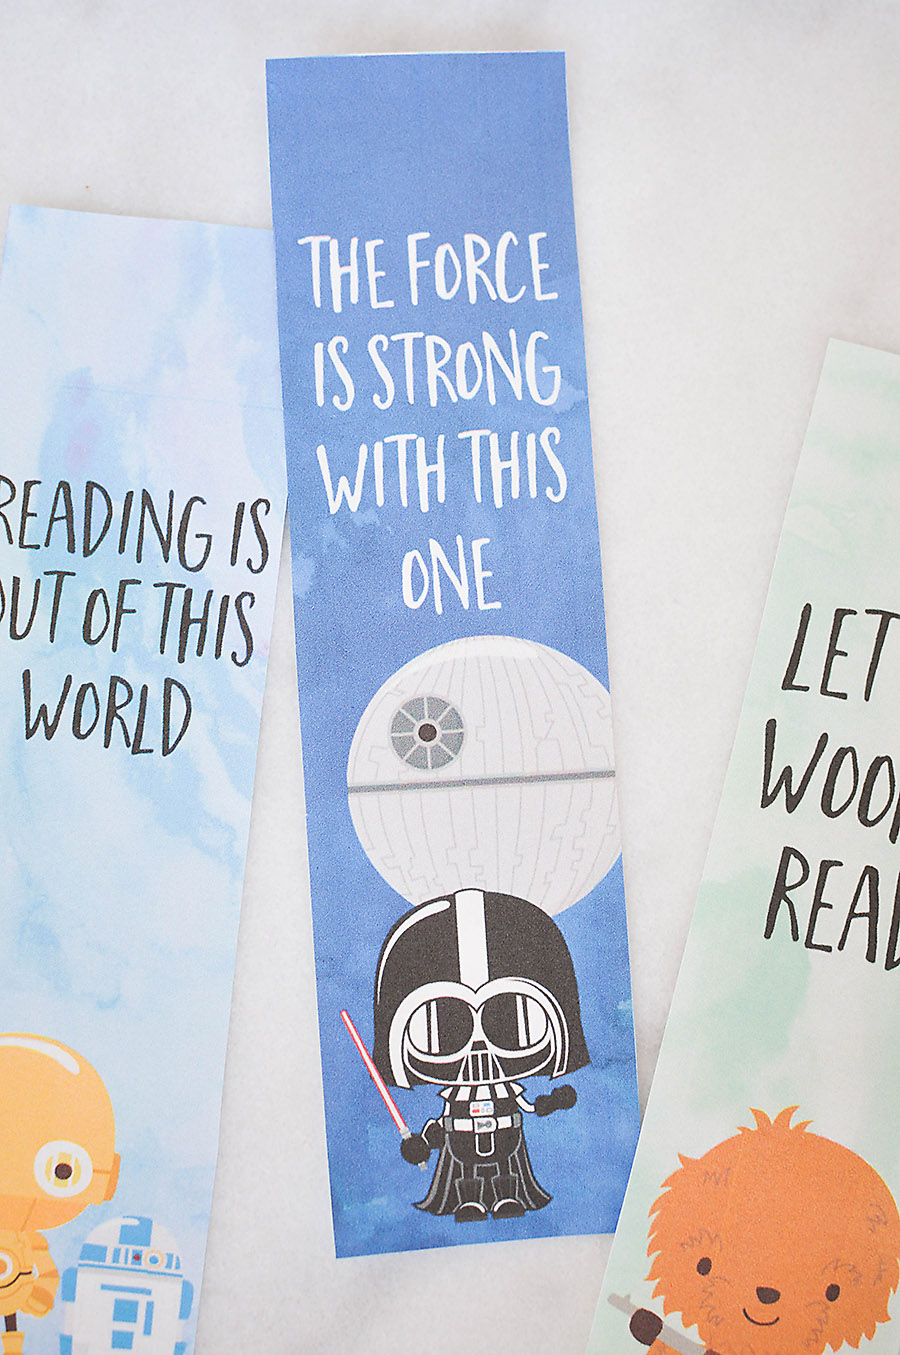 graphic regarding Star Wars Bookmark Printable titled Star Wars Bookmarks - Free of charge Printables for Youngsters - Our